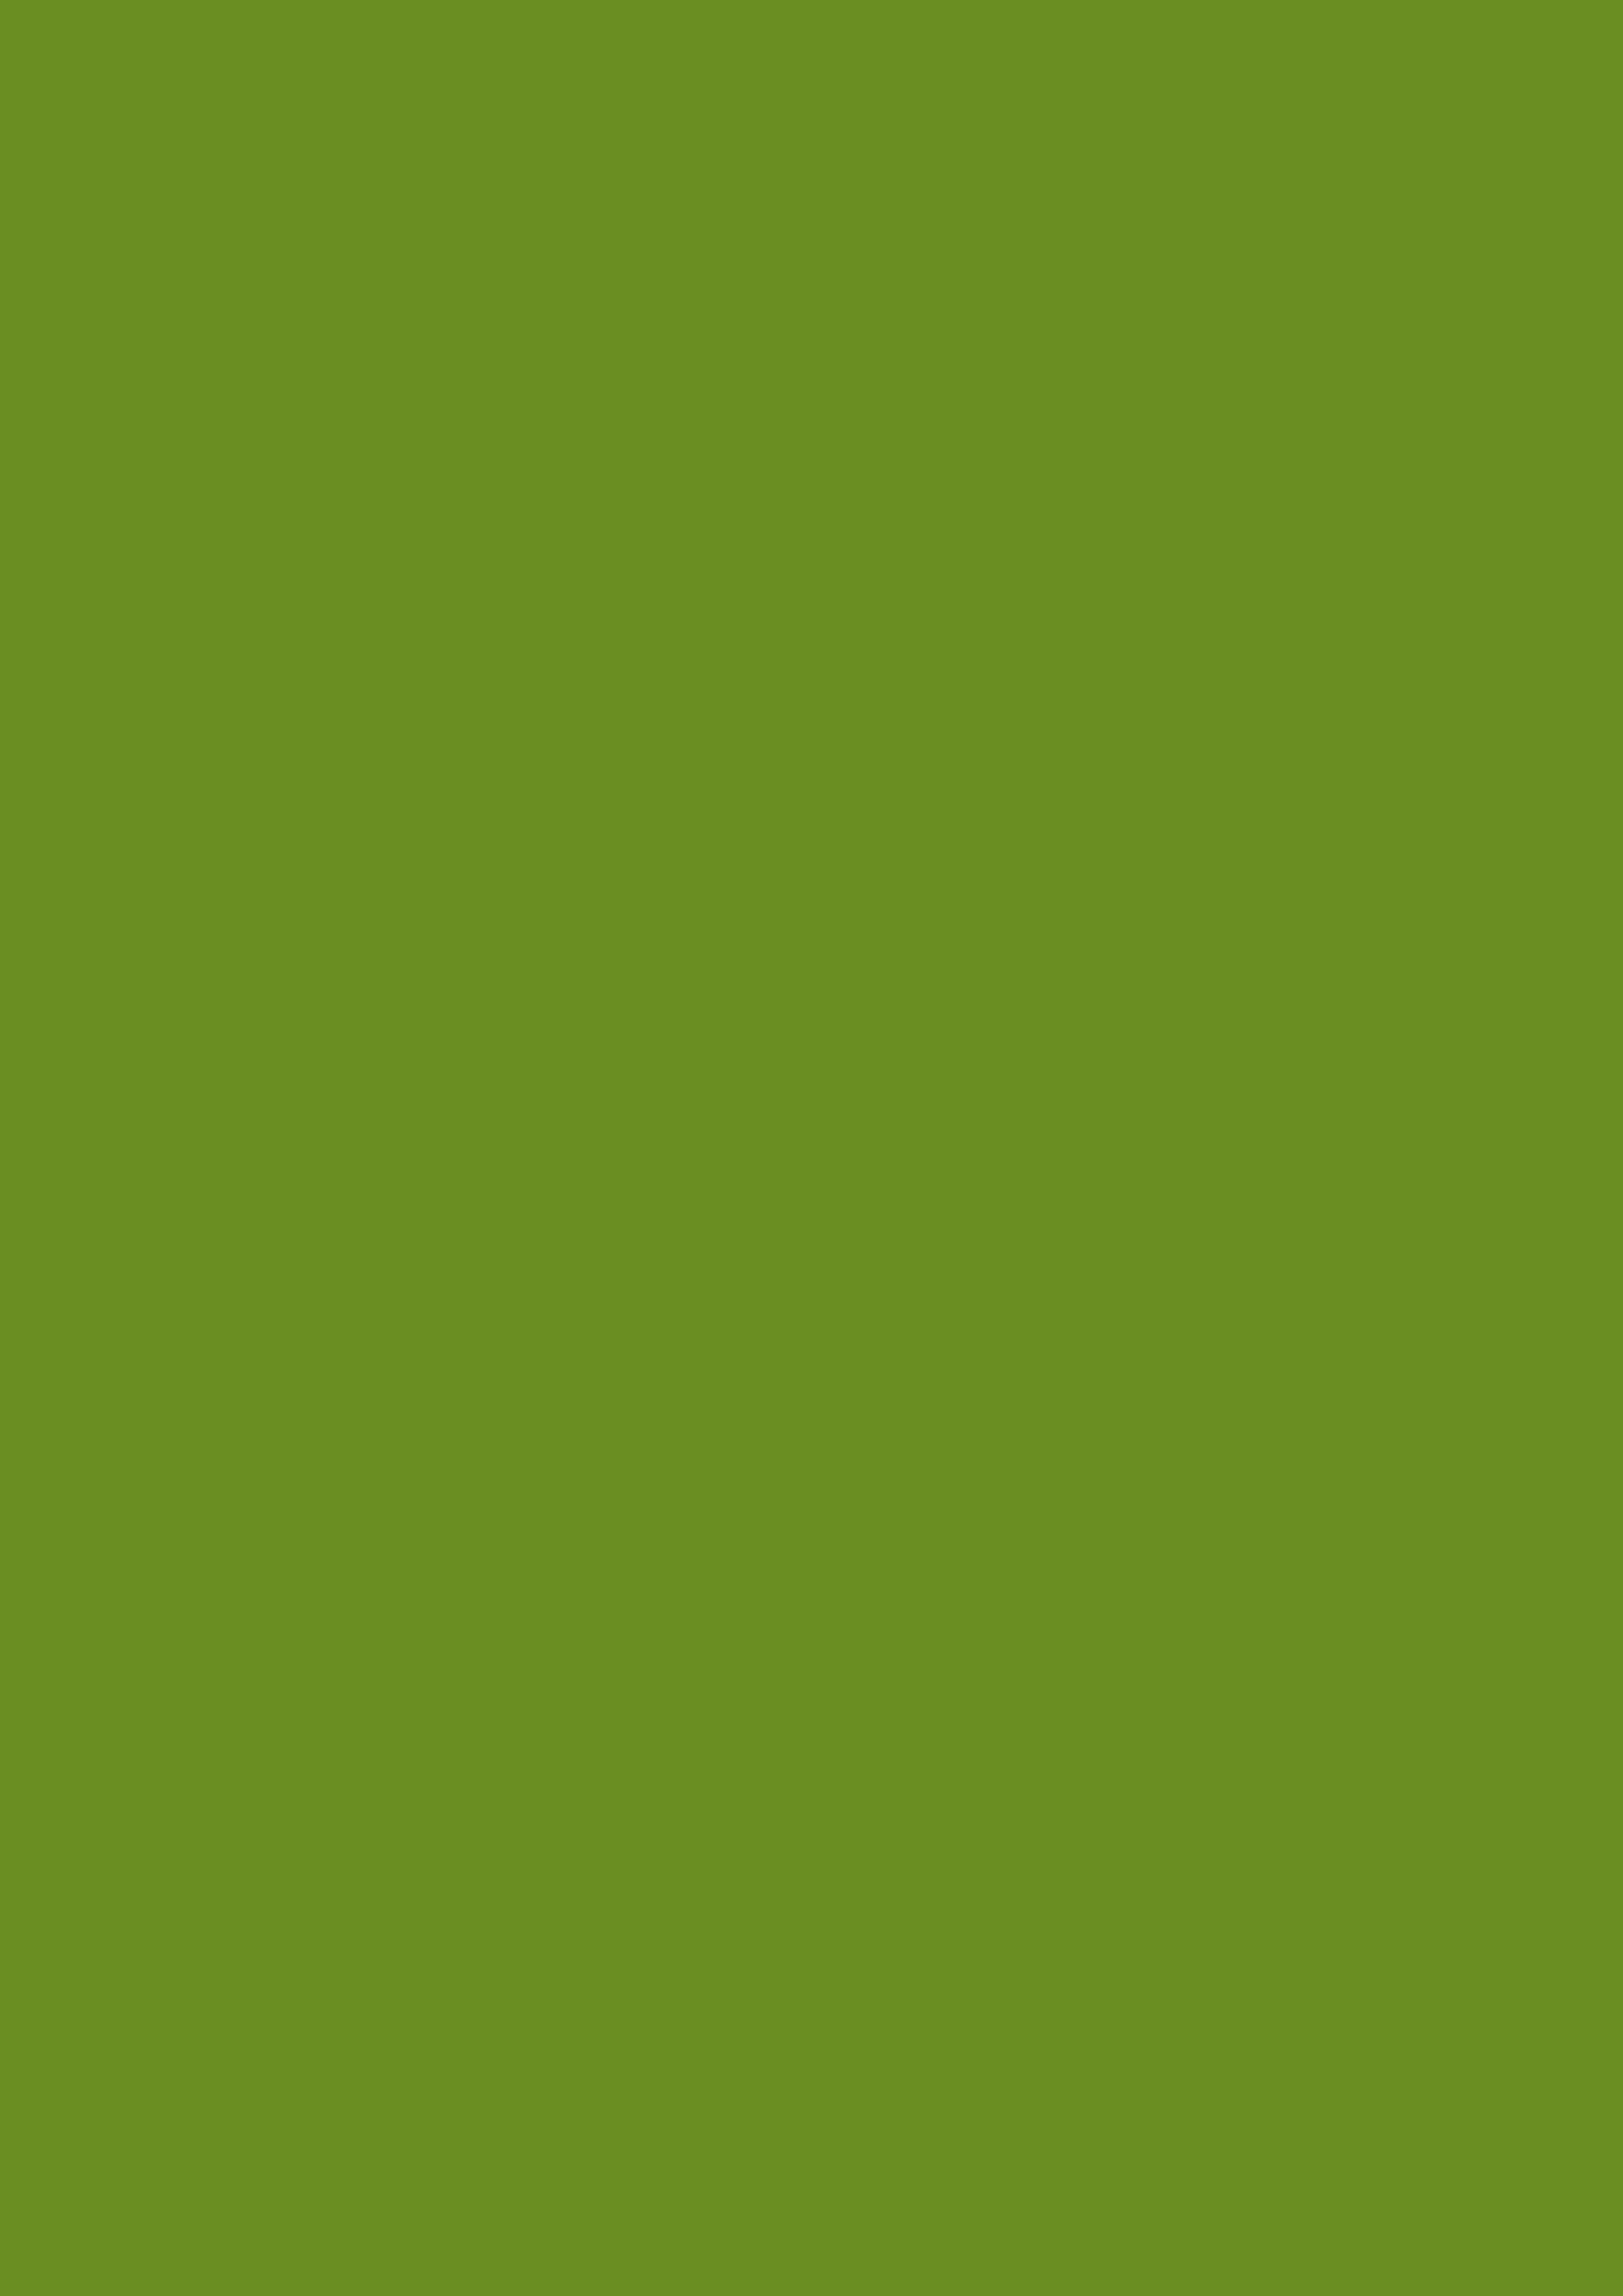 2480x3508 Olive Drab Number Three Solid Color Background